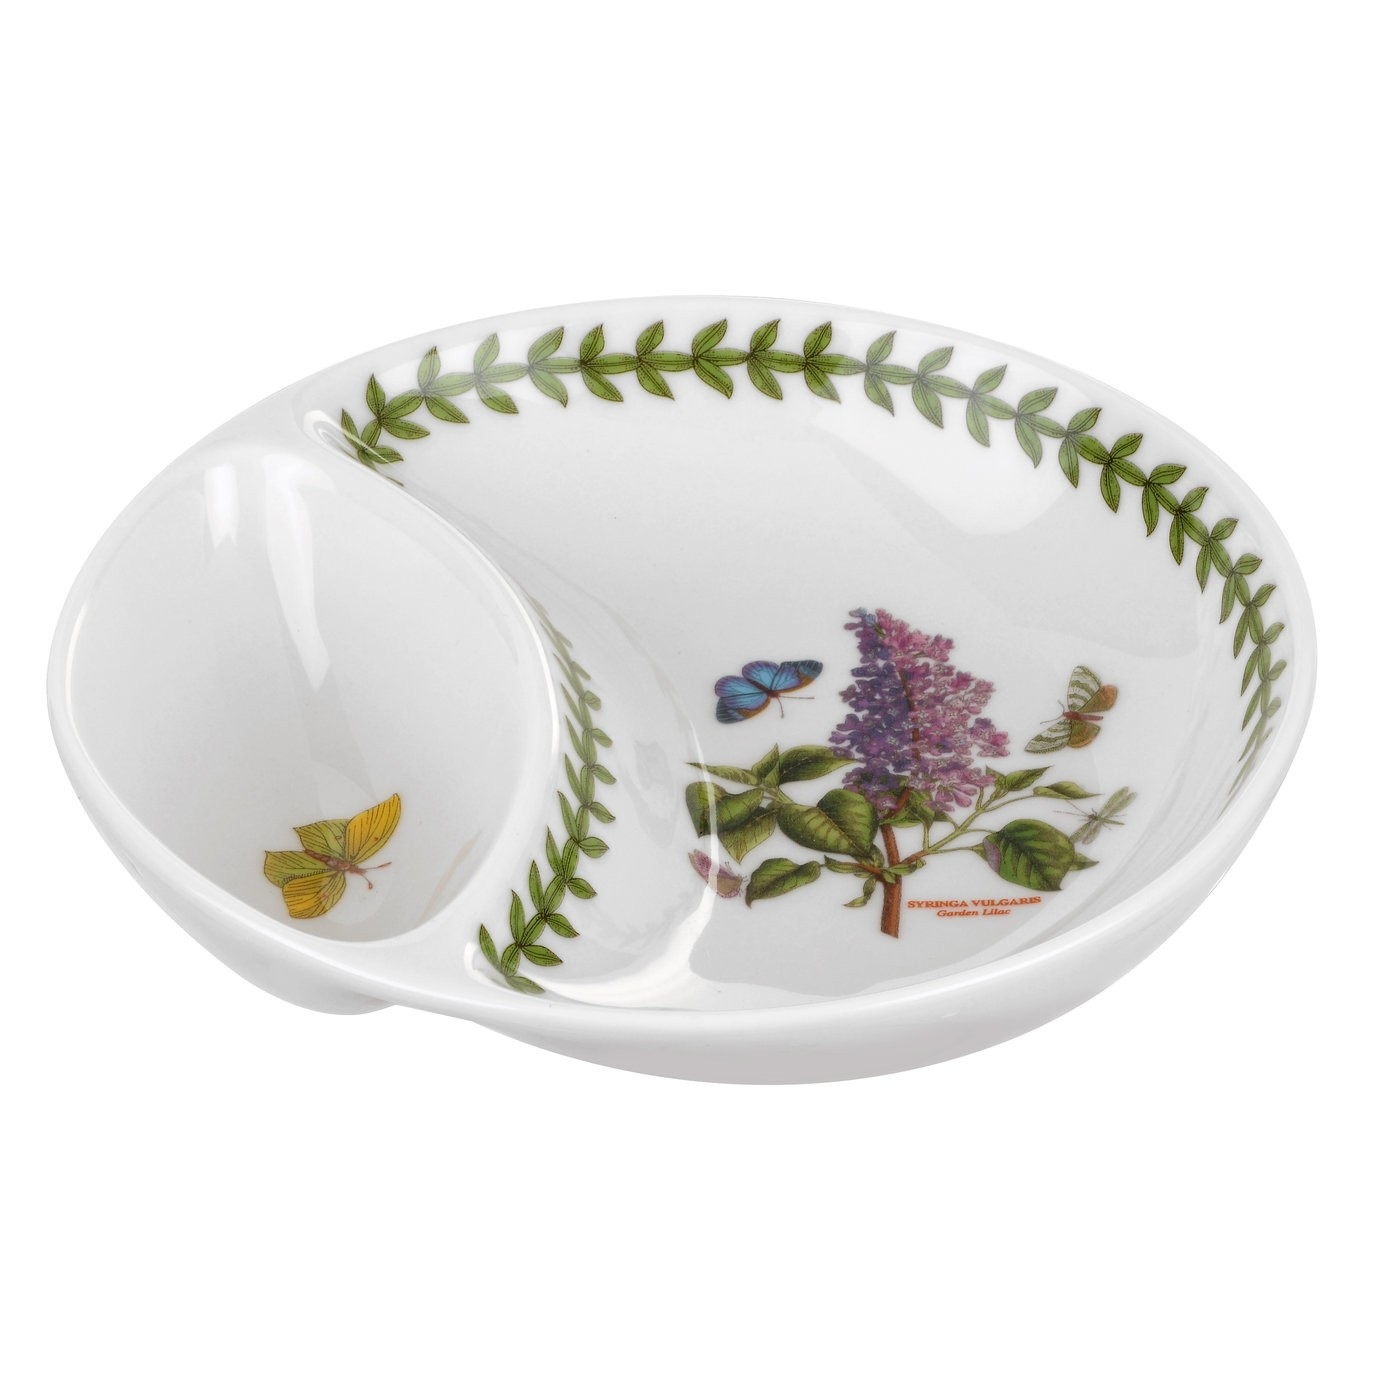 Best Portmeirion Botanic Garden Divided Dish 19 99 You Save 5 01 This Month